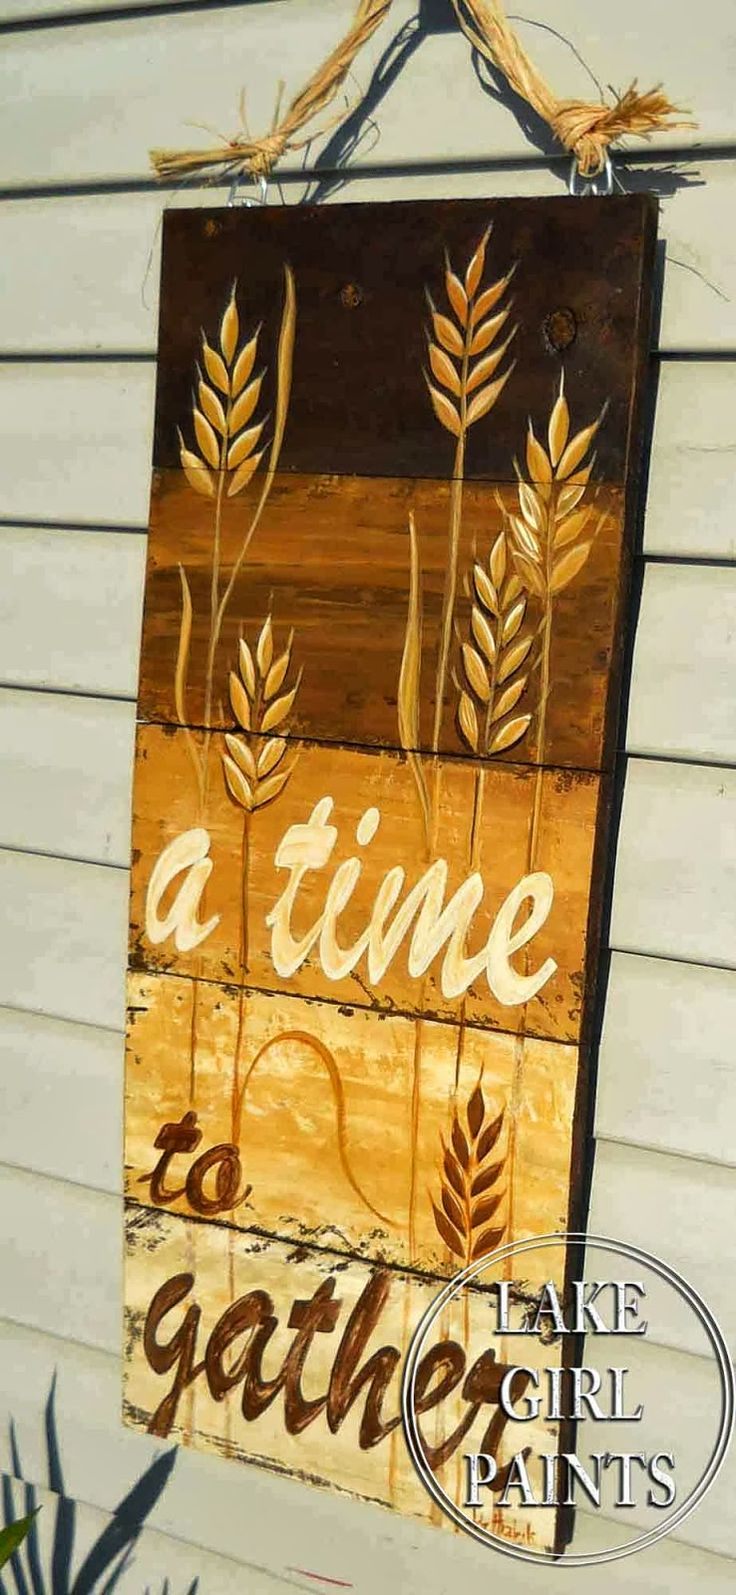 Lake Girl Paints: Handpainted Fall Wheat Door Hanging